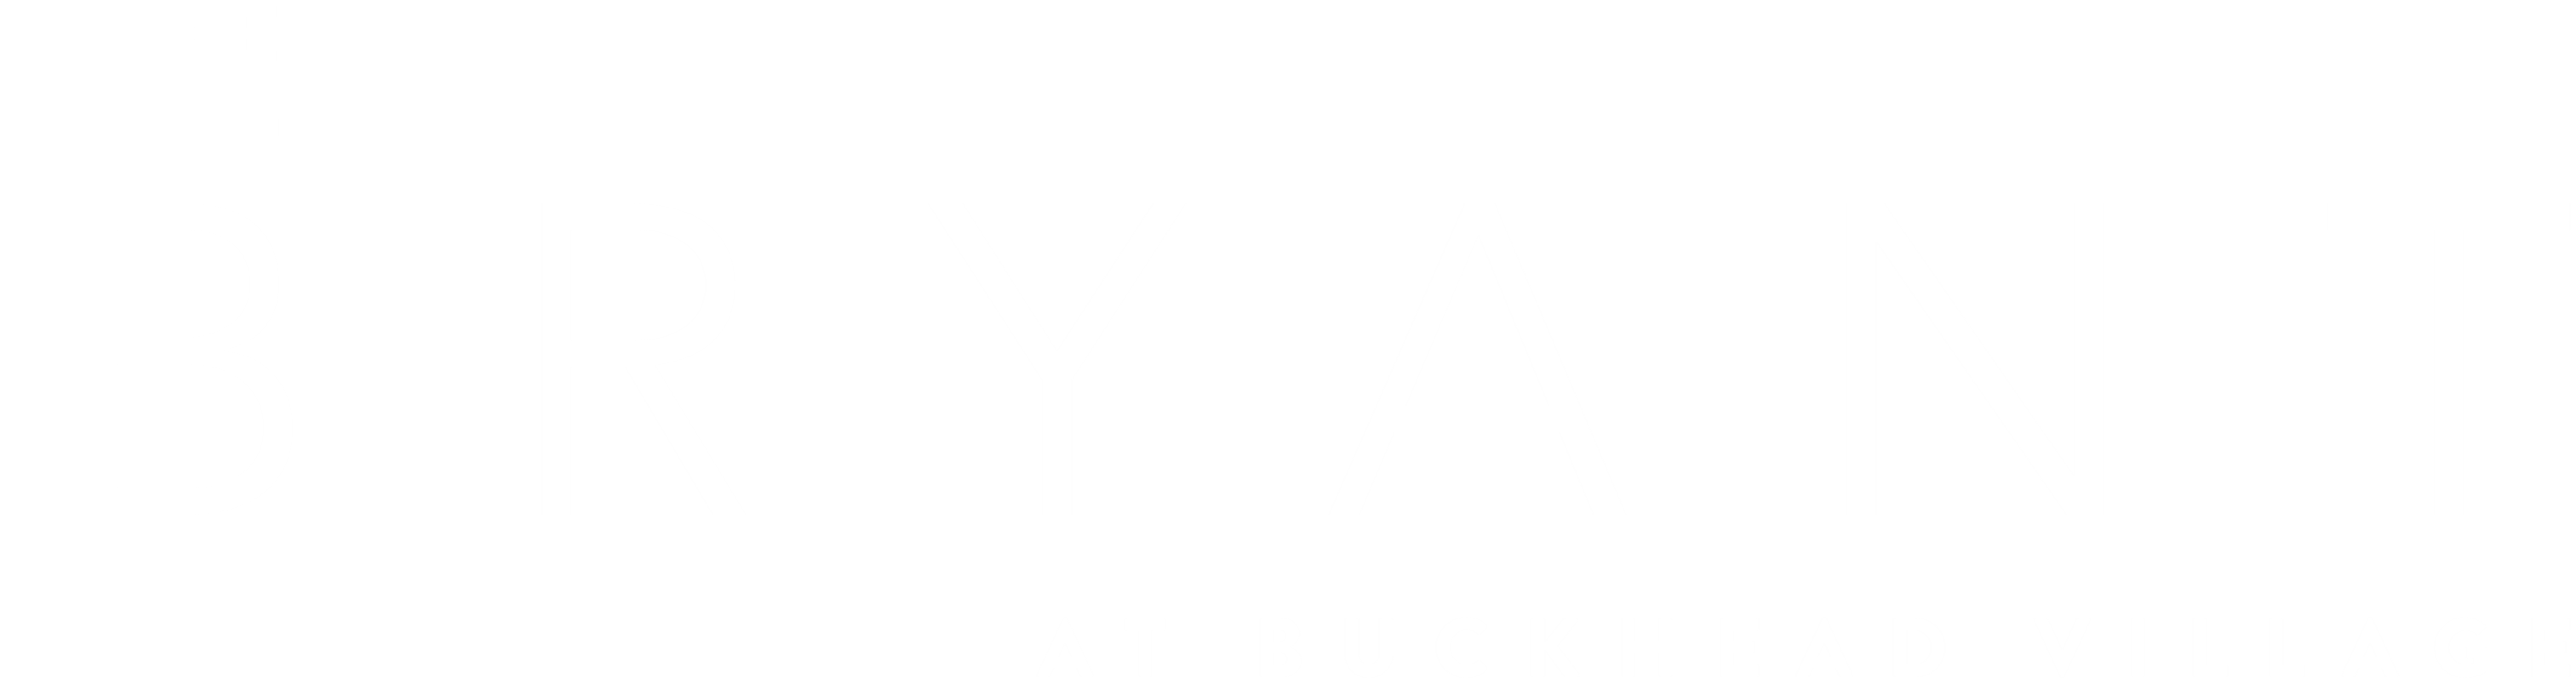 The Bryant at Buckhead Village